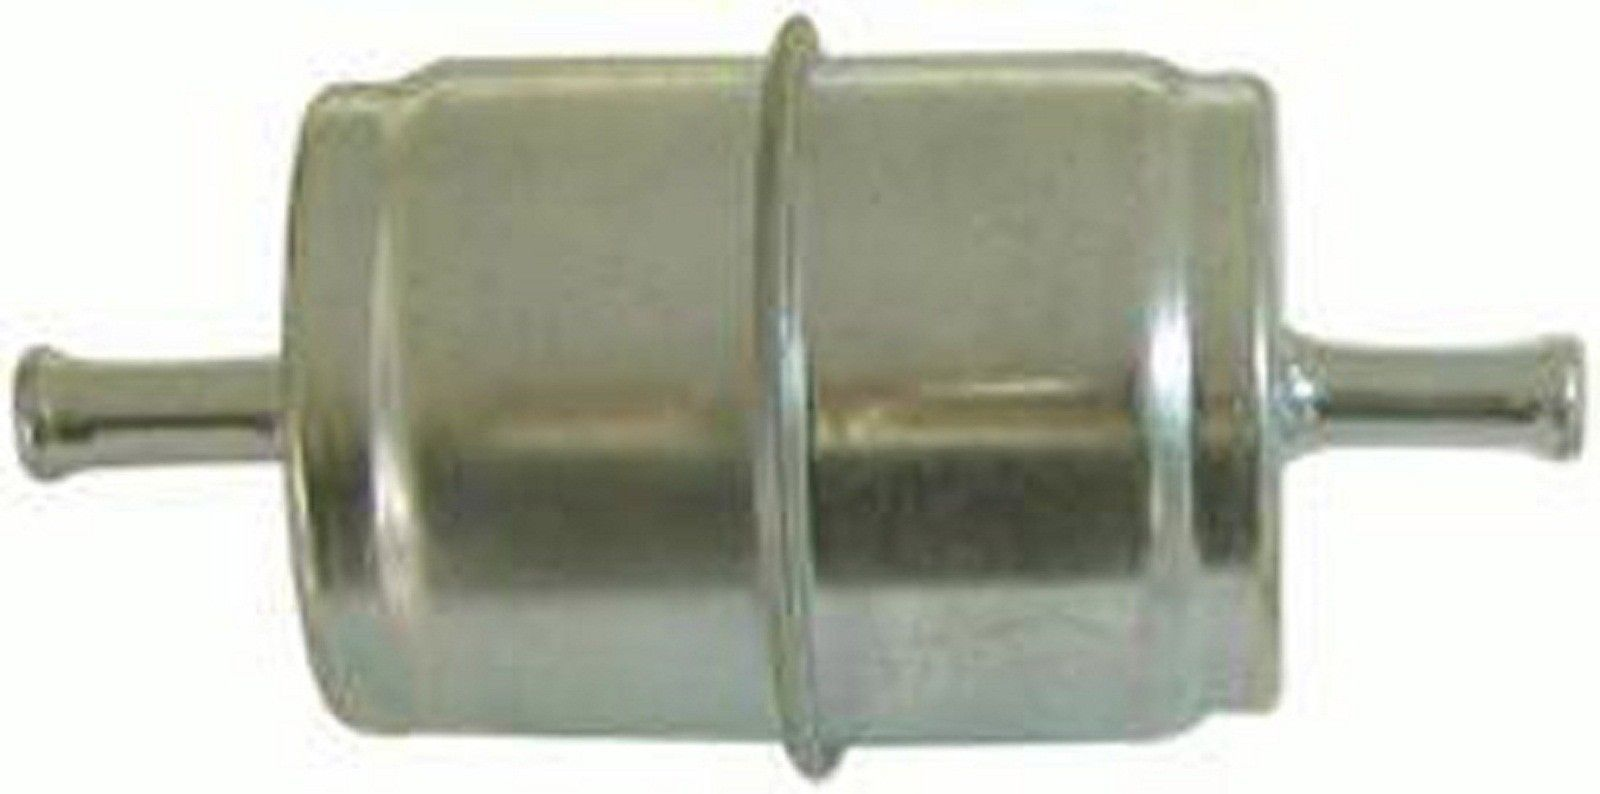 Fuel Filter for Kohler, Ariens, Toro - Click Image to Close